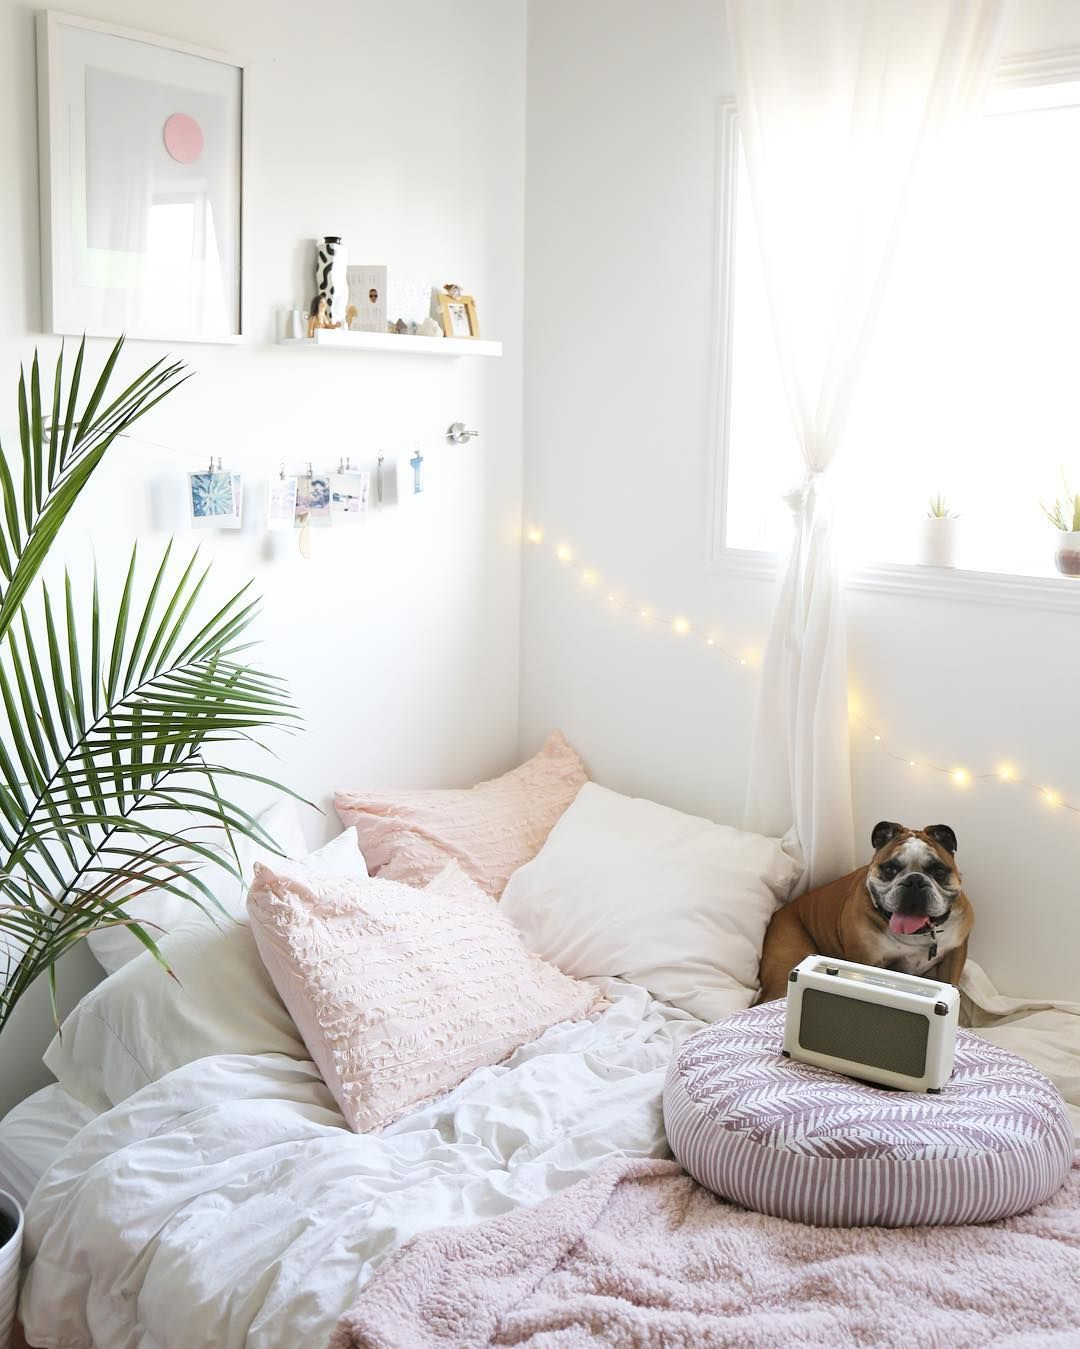 10 Great Ideas To Jazz Up A Small Square Bedroom: Sheewa Salehi (@cheebs_s) • Instagram Photos And Videos